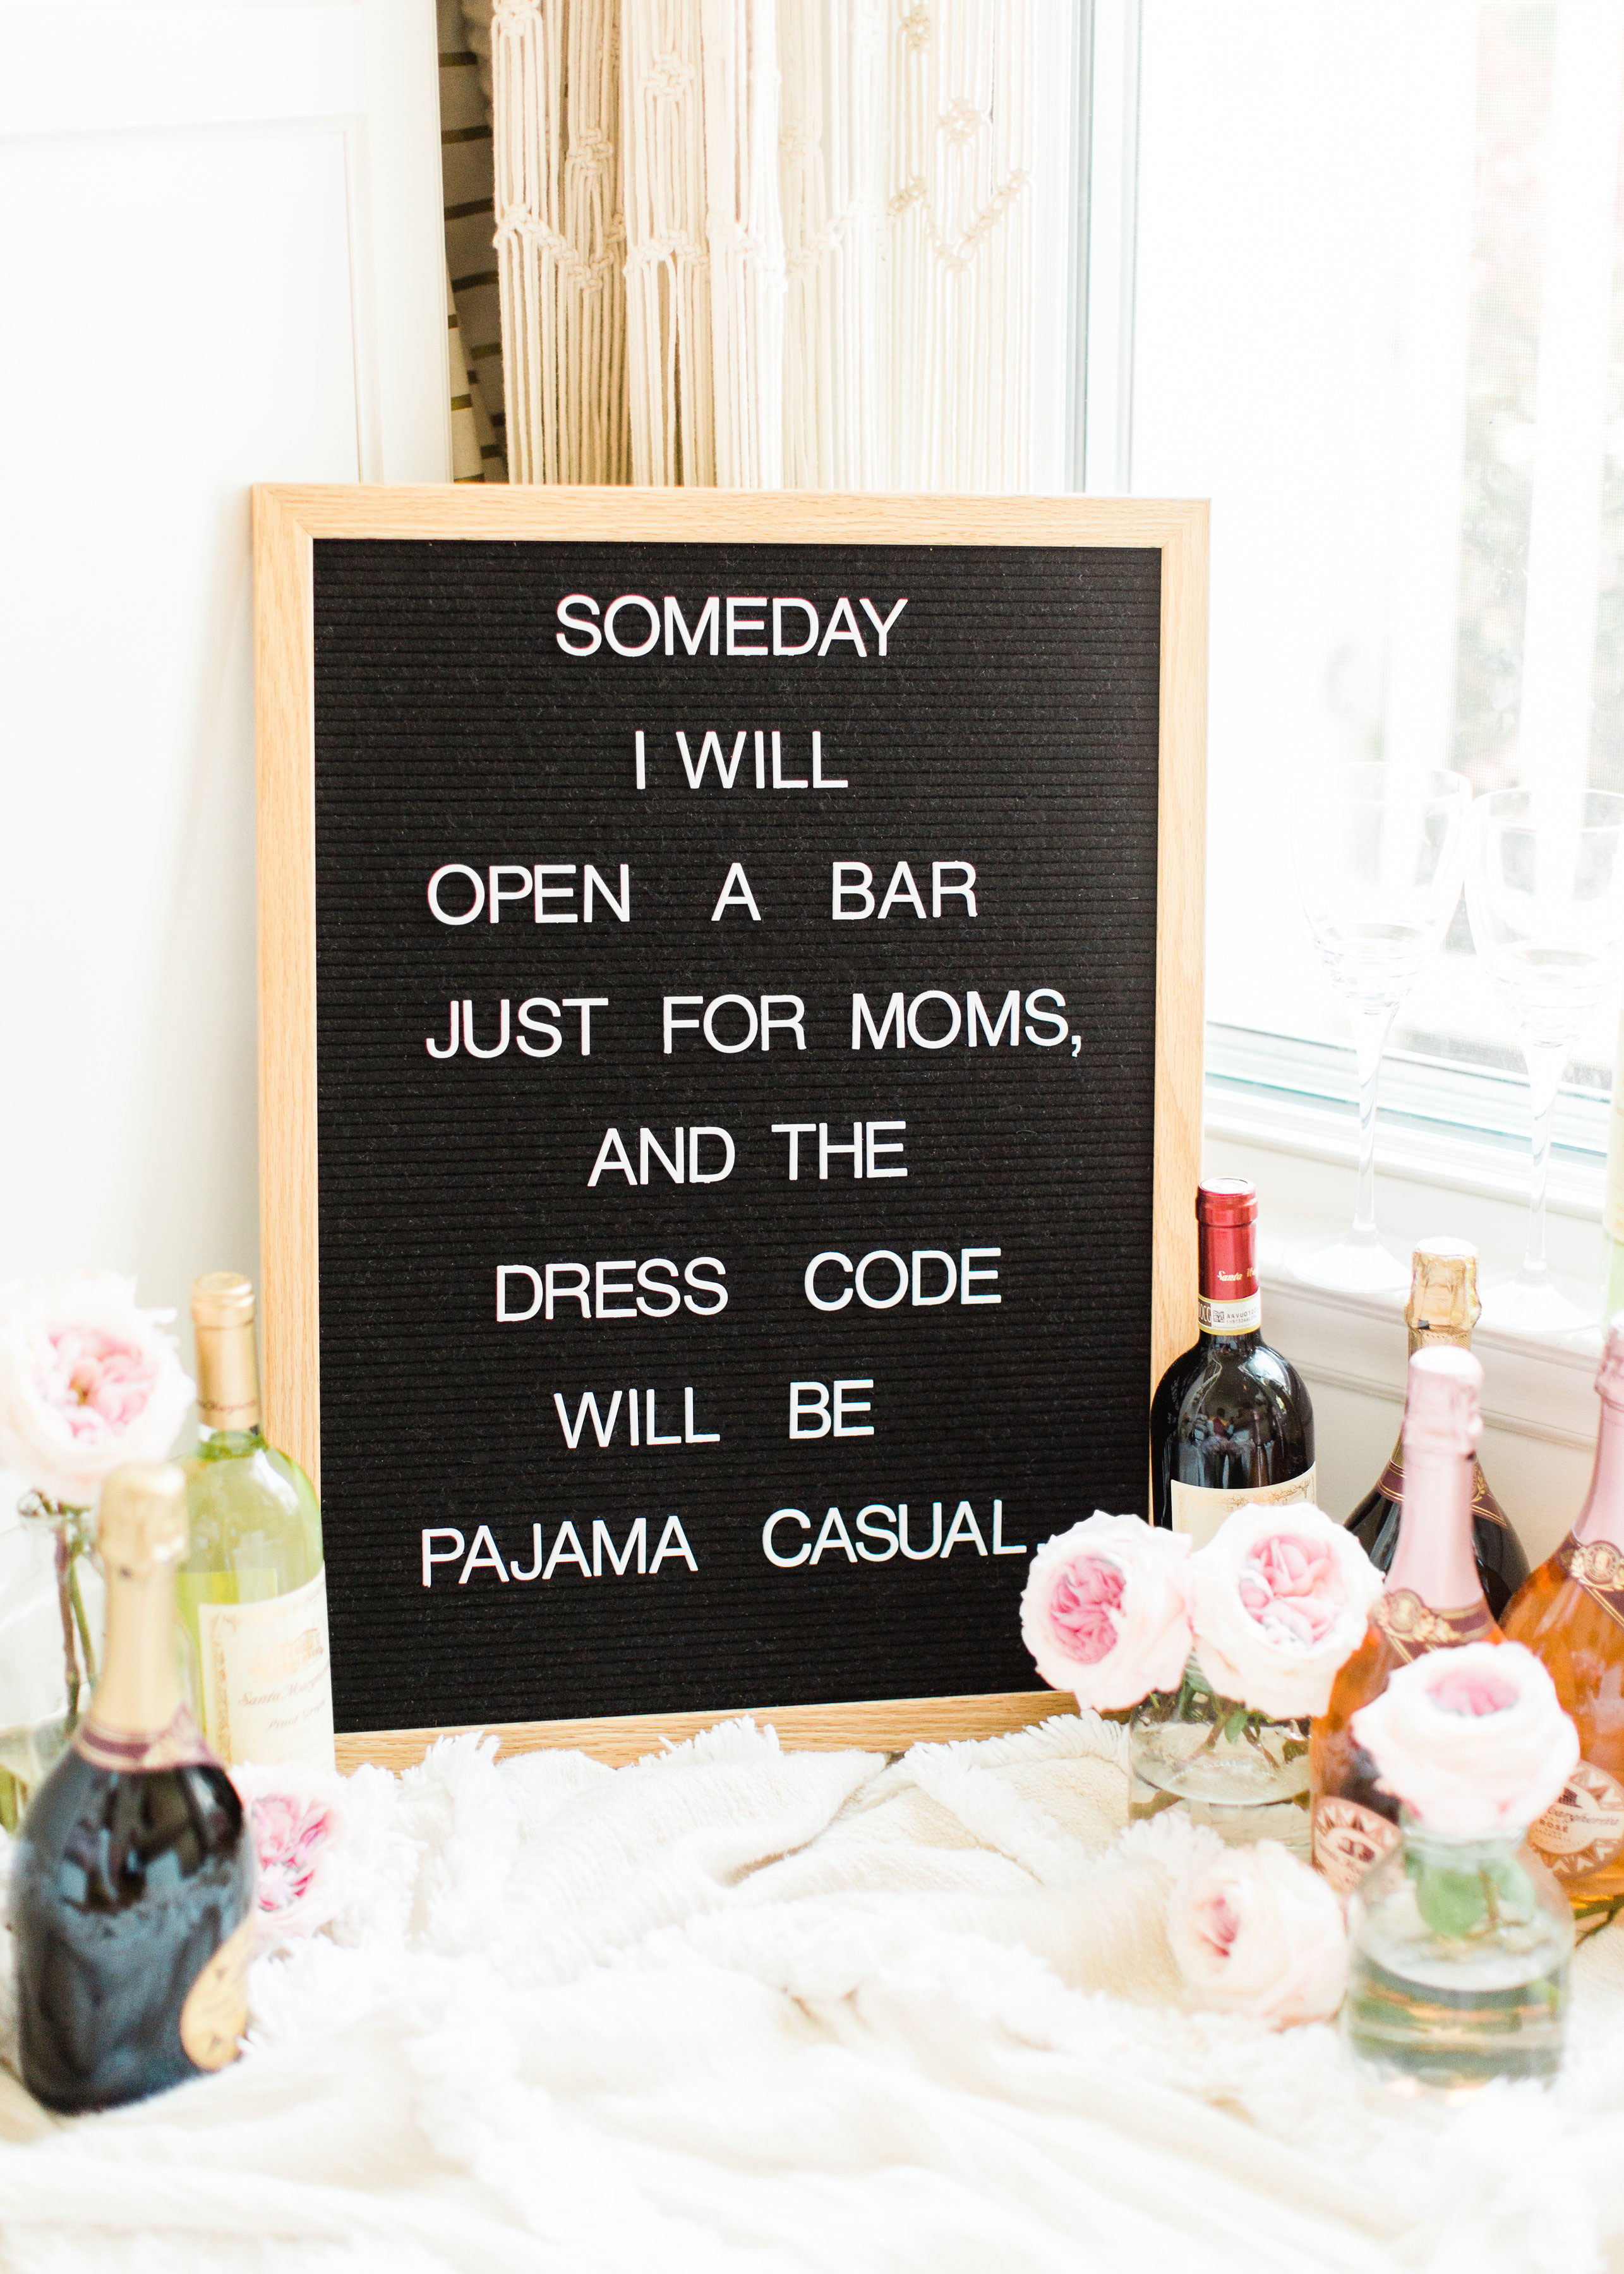 Pajama Casual Bar Just for Moms - Motherhood - Felt Letter Board Quotes // Lifestyle blogger Lexi of Glitter, Inc. shares a few little love notes to the things she loved most this week, including weekend plans in Asheville. #motherhood #momquotes #motherhoodquotes #feltletterboard #letterboard #letterboardquotes Click through for the details. | glitterinc.com | @glitterinc